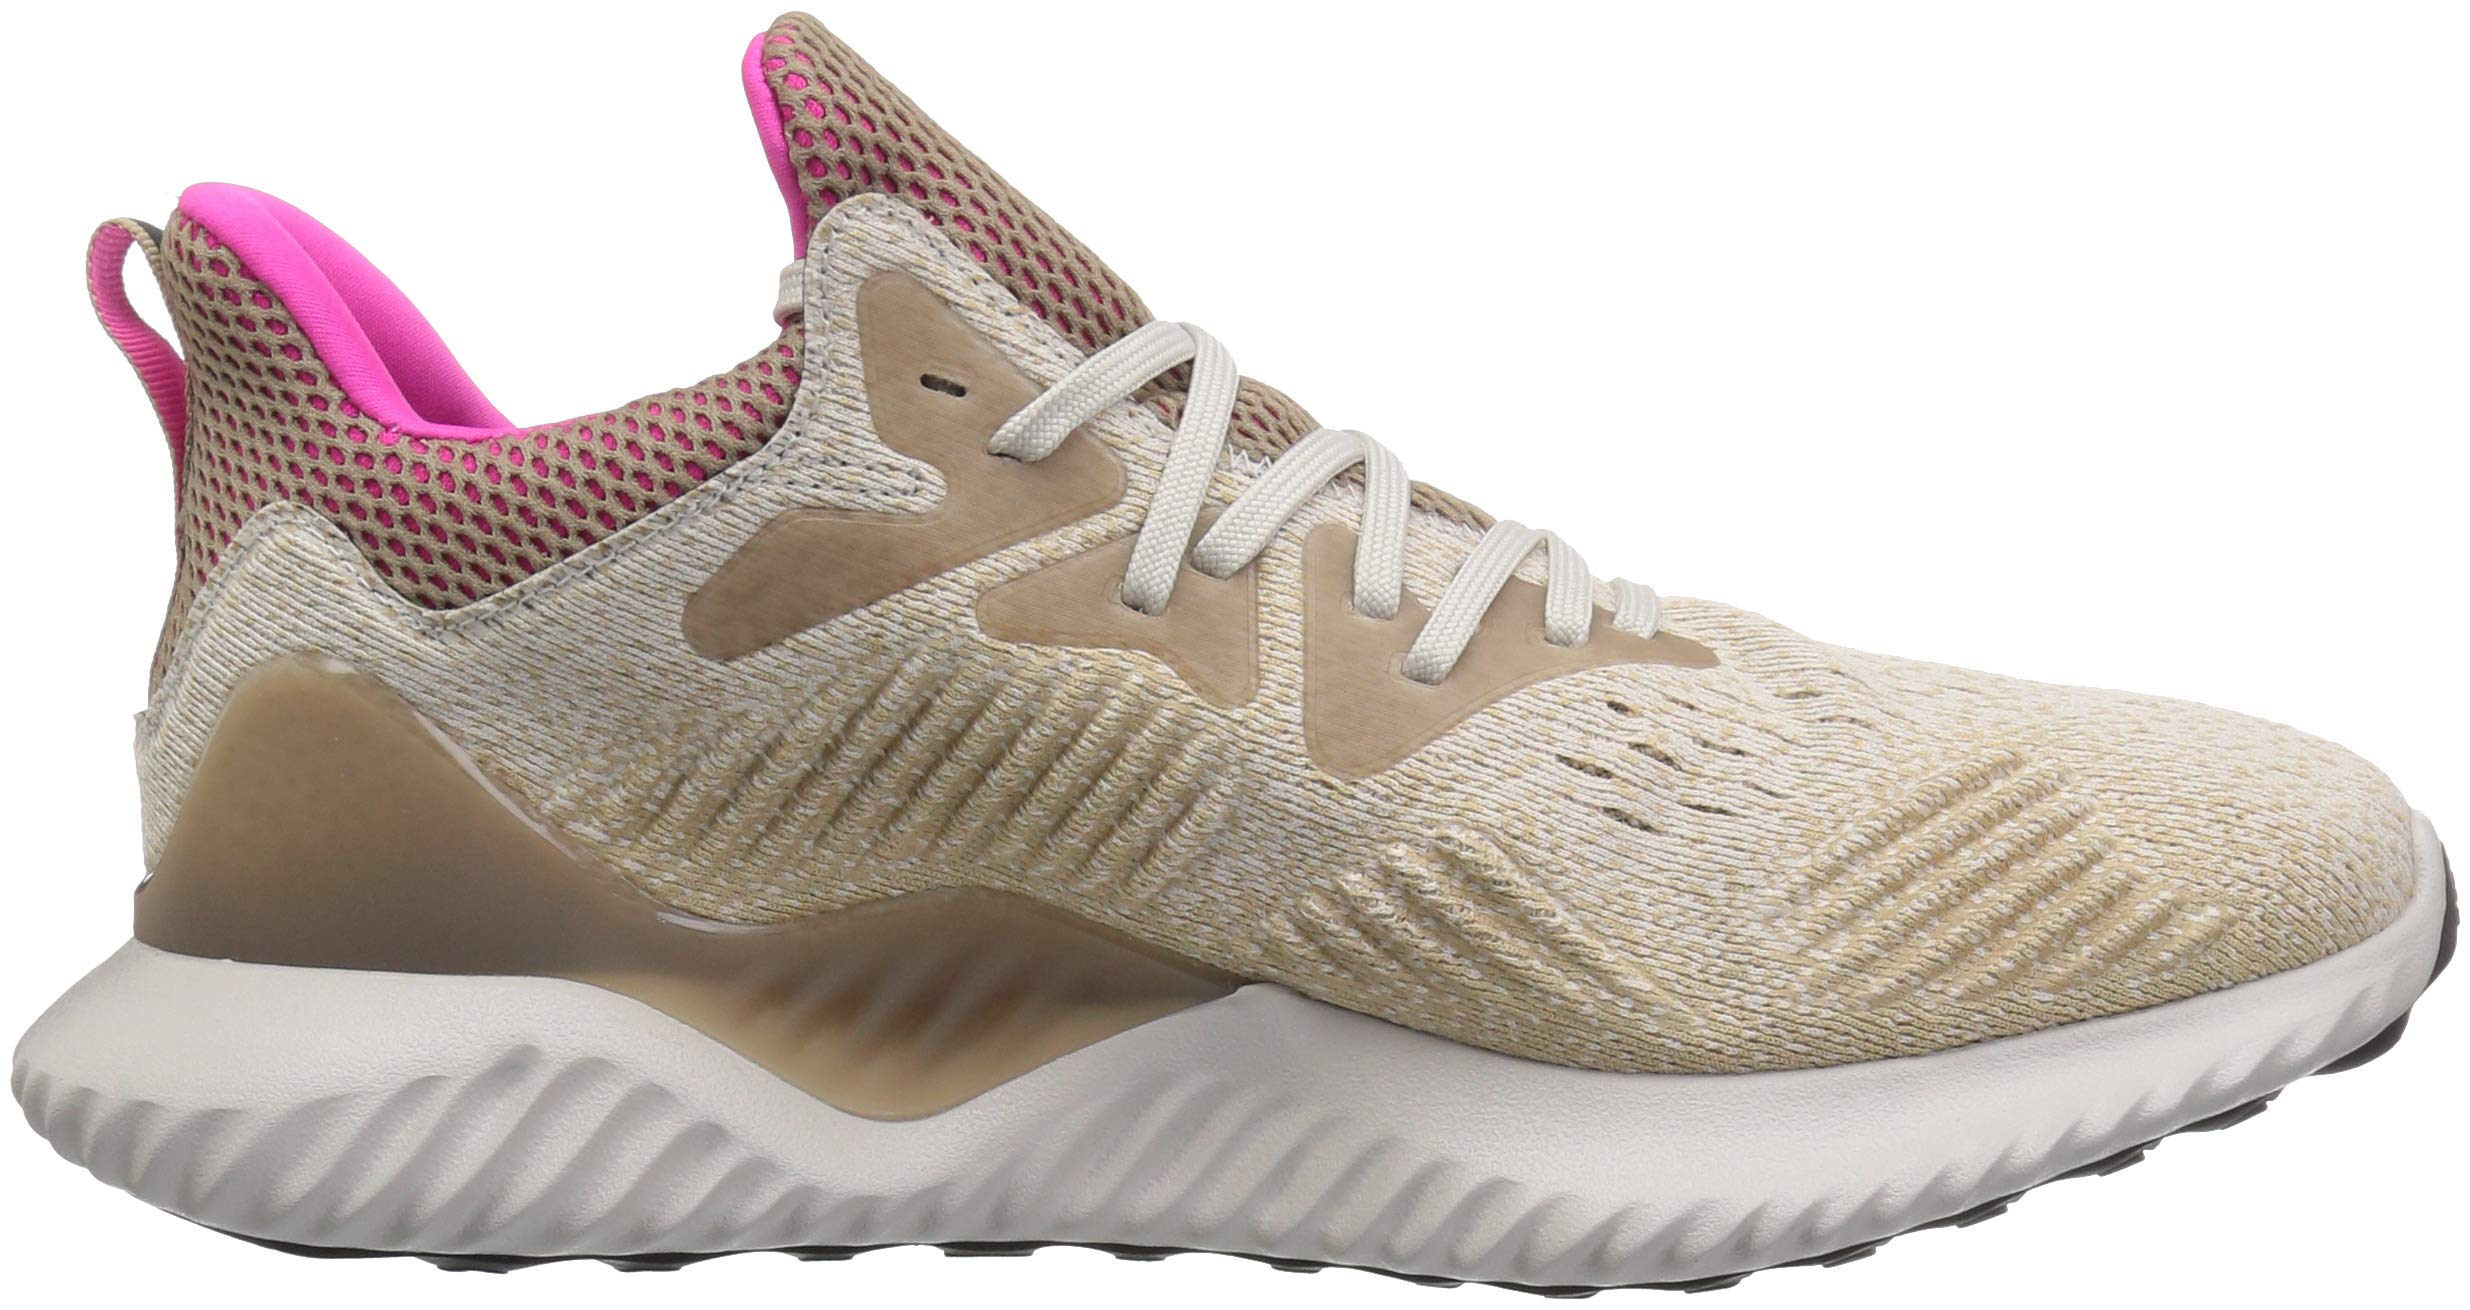 adidas Men's Alphabounce Beyond Running Shoe, Chalk Pearl/Shock Pink/Trace Khaki, 7.5 M US by adidas (Image #7)